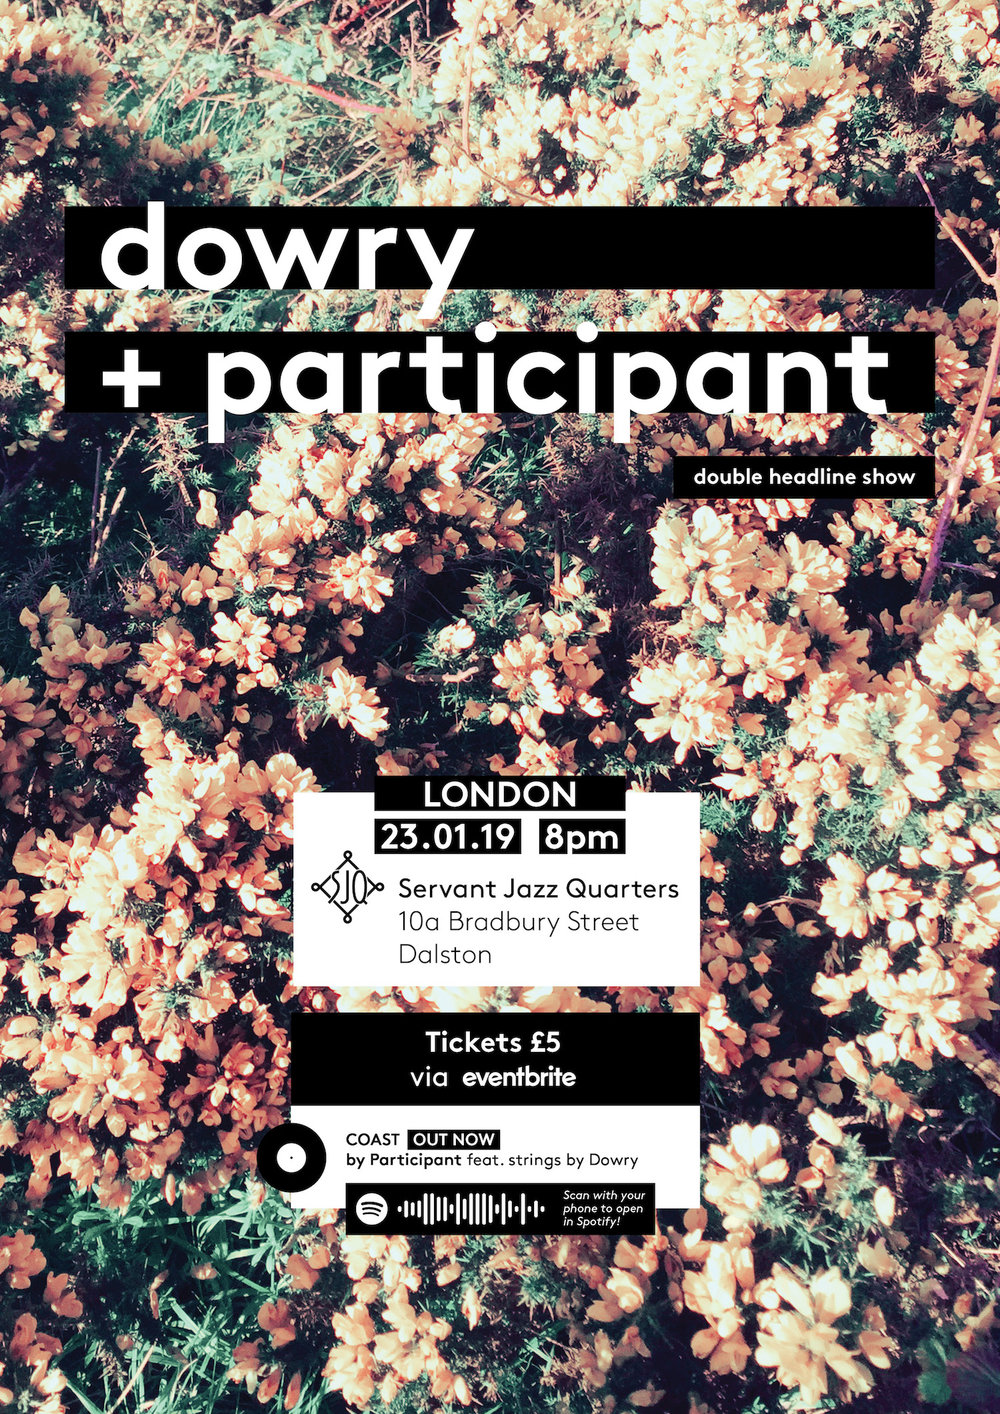 Dowry + Participant head to London - January 23rd 8pm | Servant Jazz Quarters